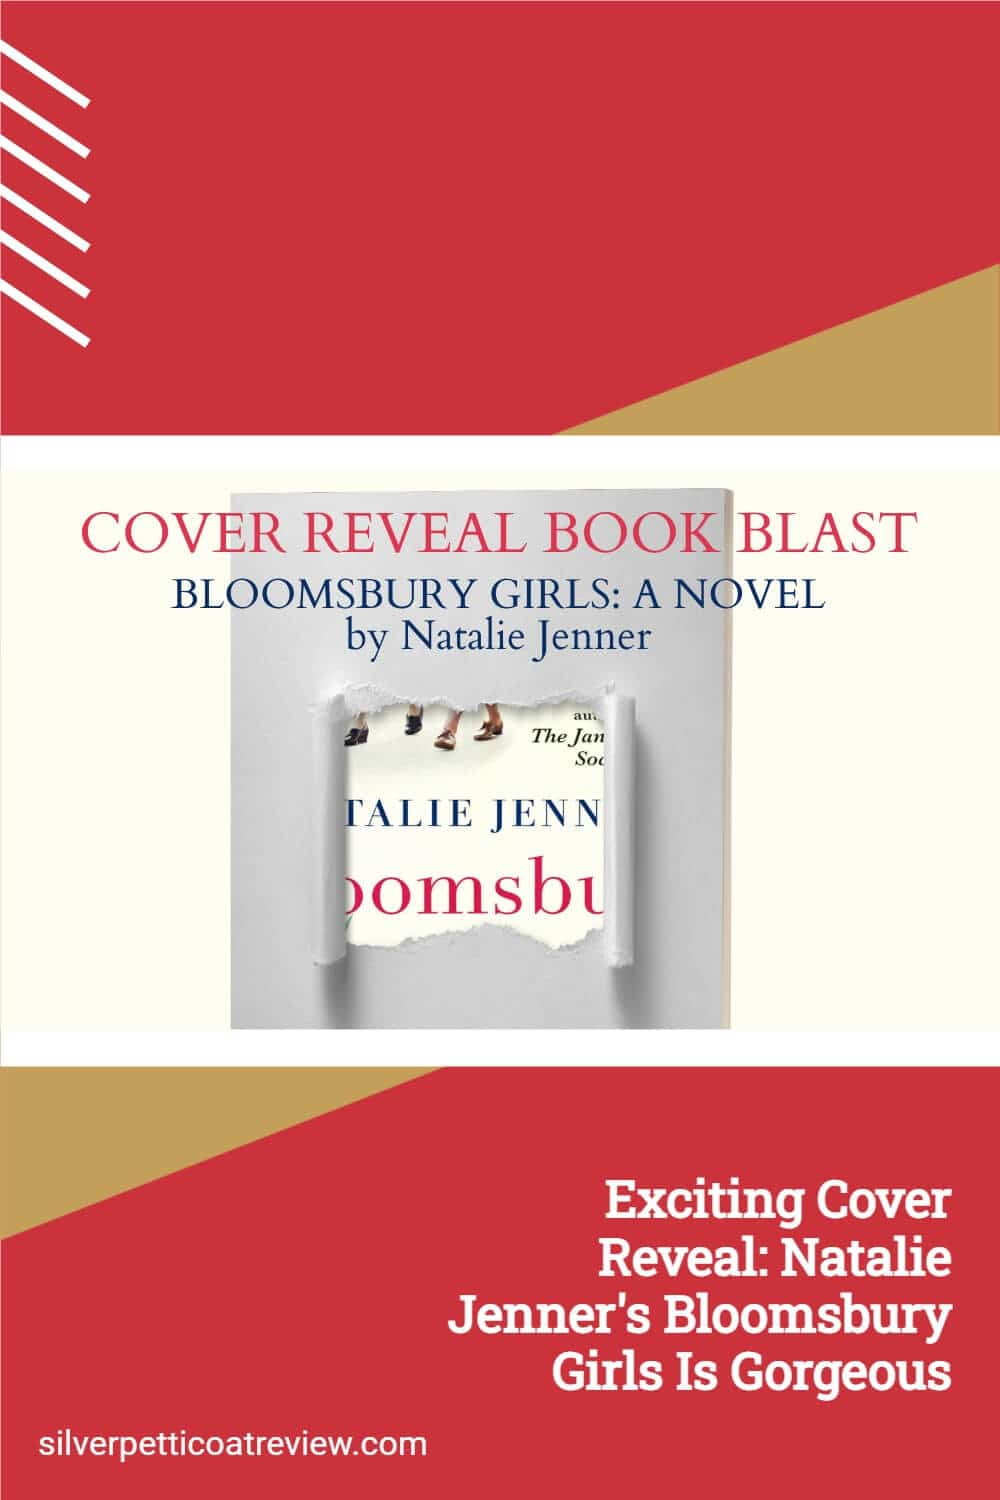 Exciting Cover Reveal: Natalie Jenner's Bloomsbury Girls is Gorgeous; Pinterest image